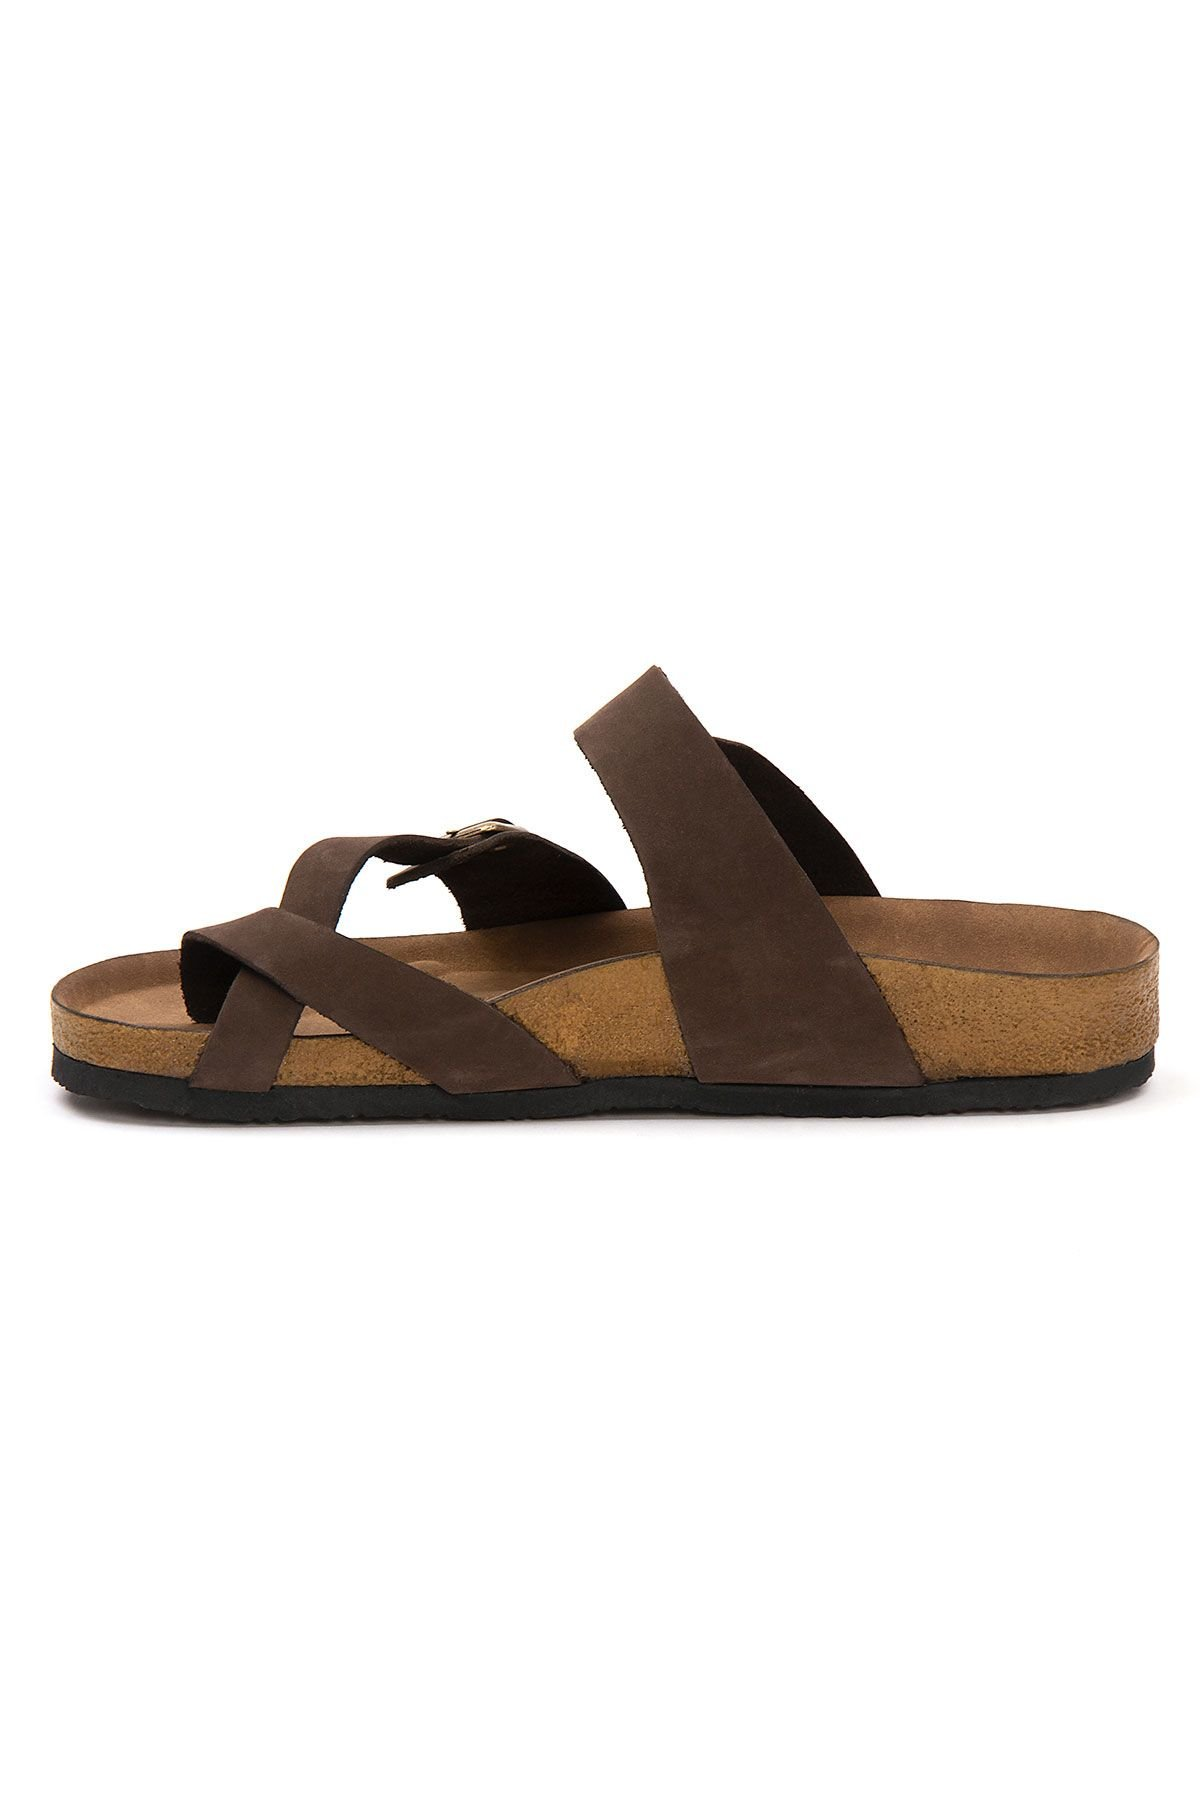 Pegia Genuine Leather Men's Slippers 215022 Brown